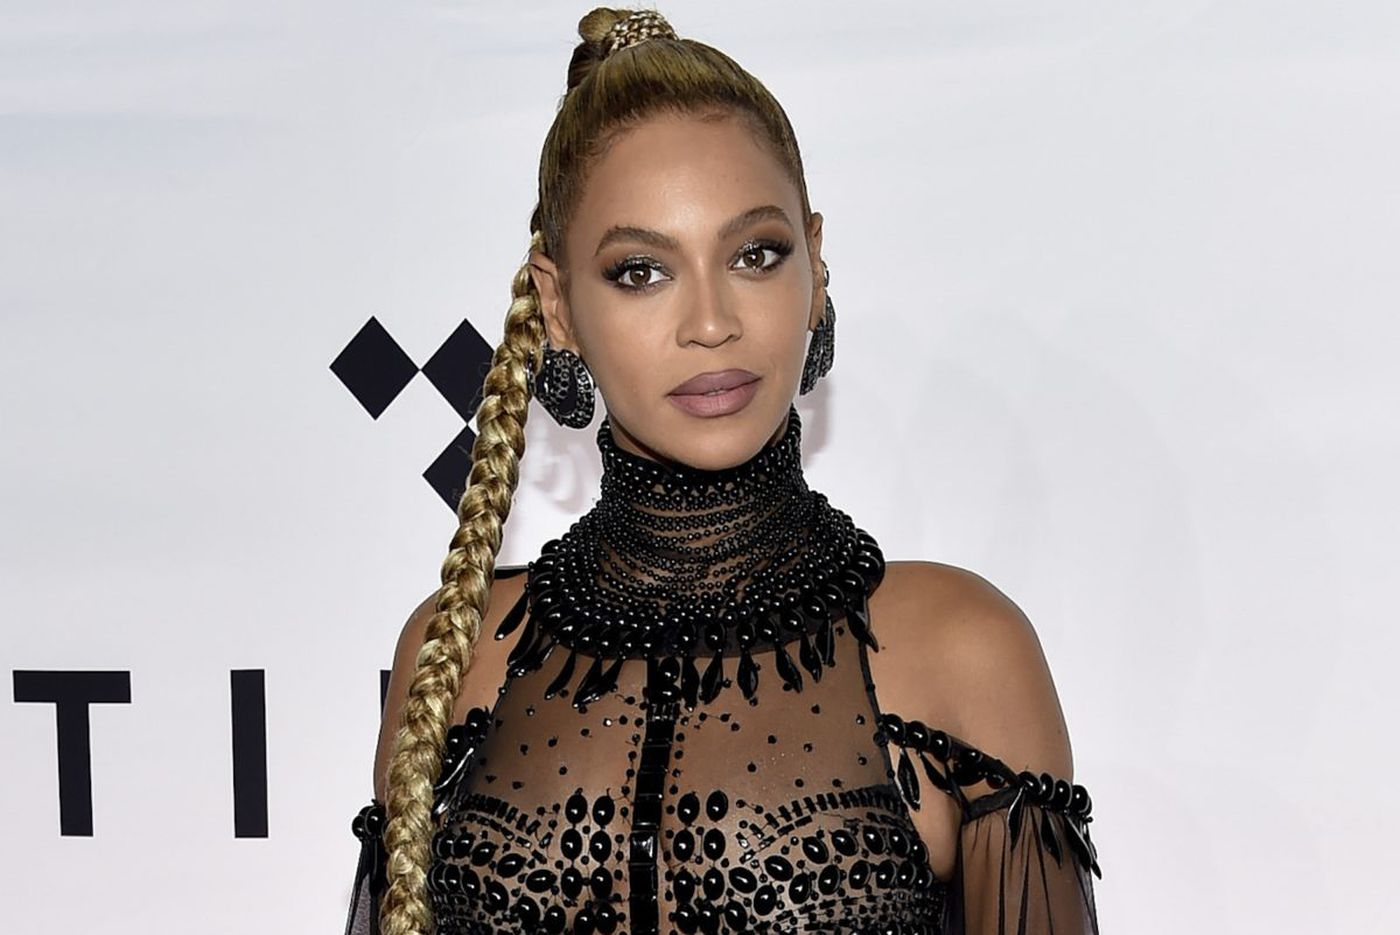 Beyoncé celebrated her birthday with a Philly-made cake